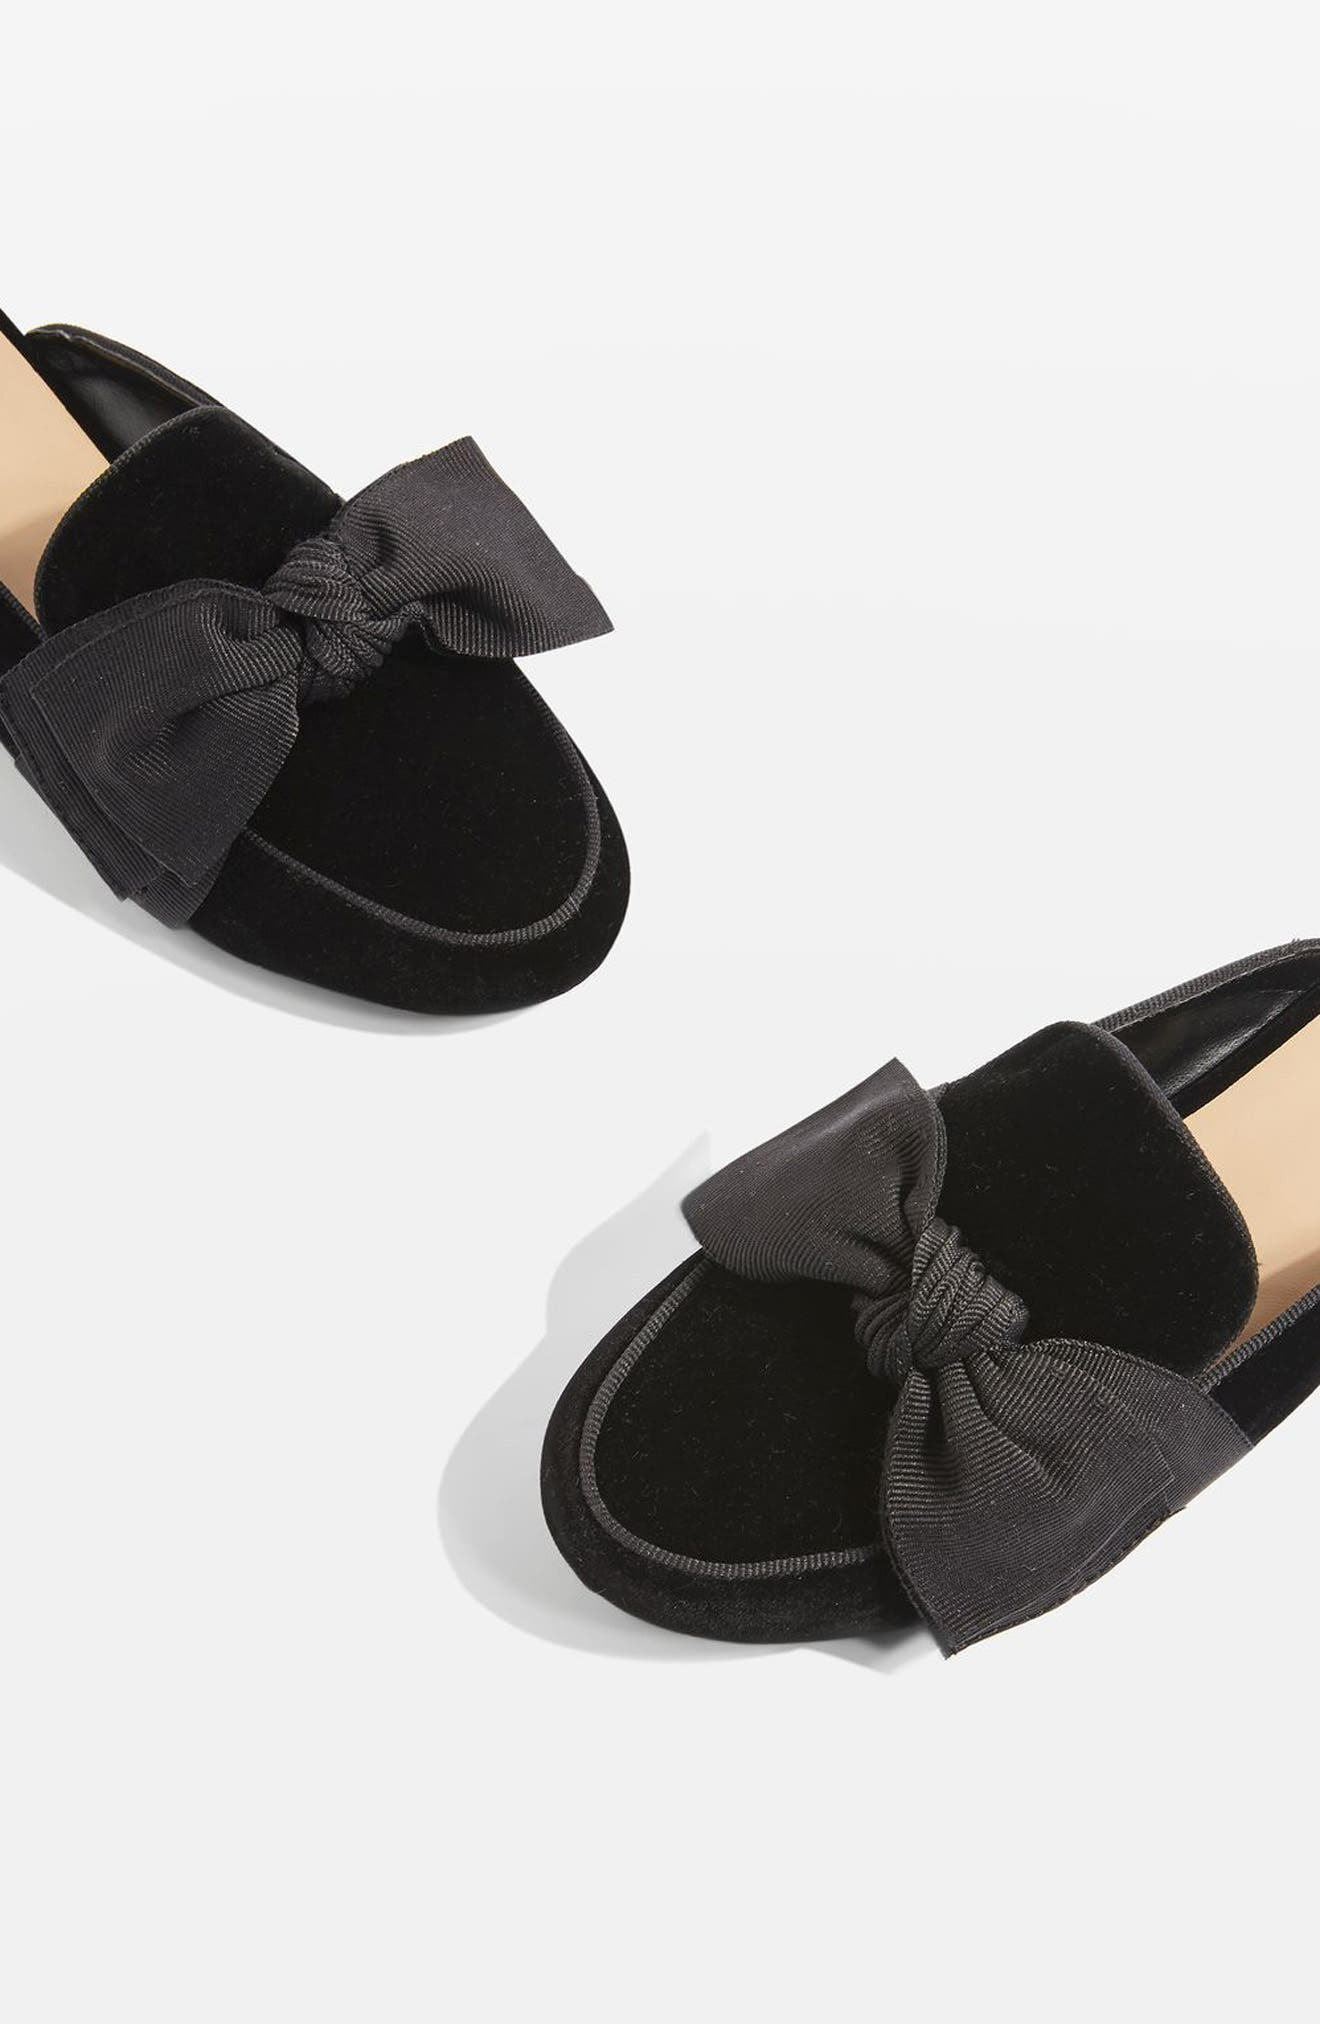 Luna Bow Detail Backless Loafers,                             Main thumbnail 1, color,                             001